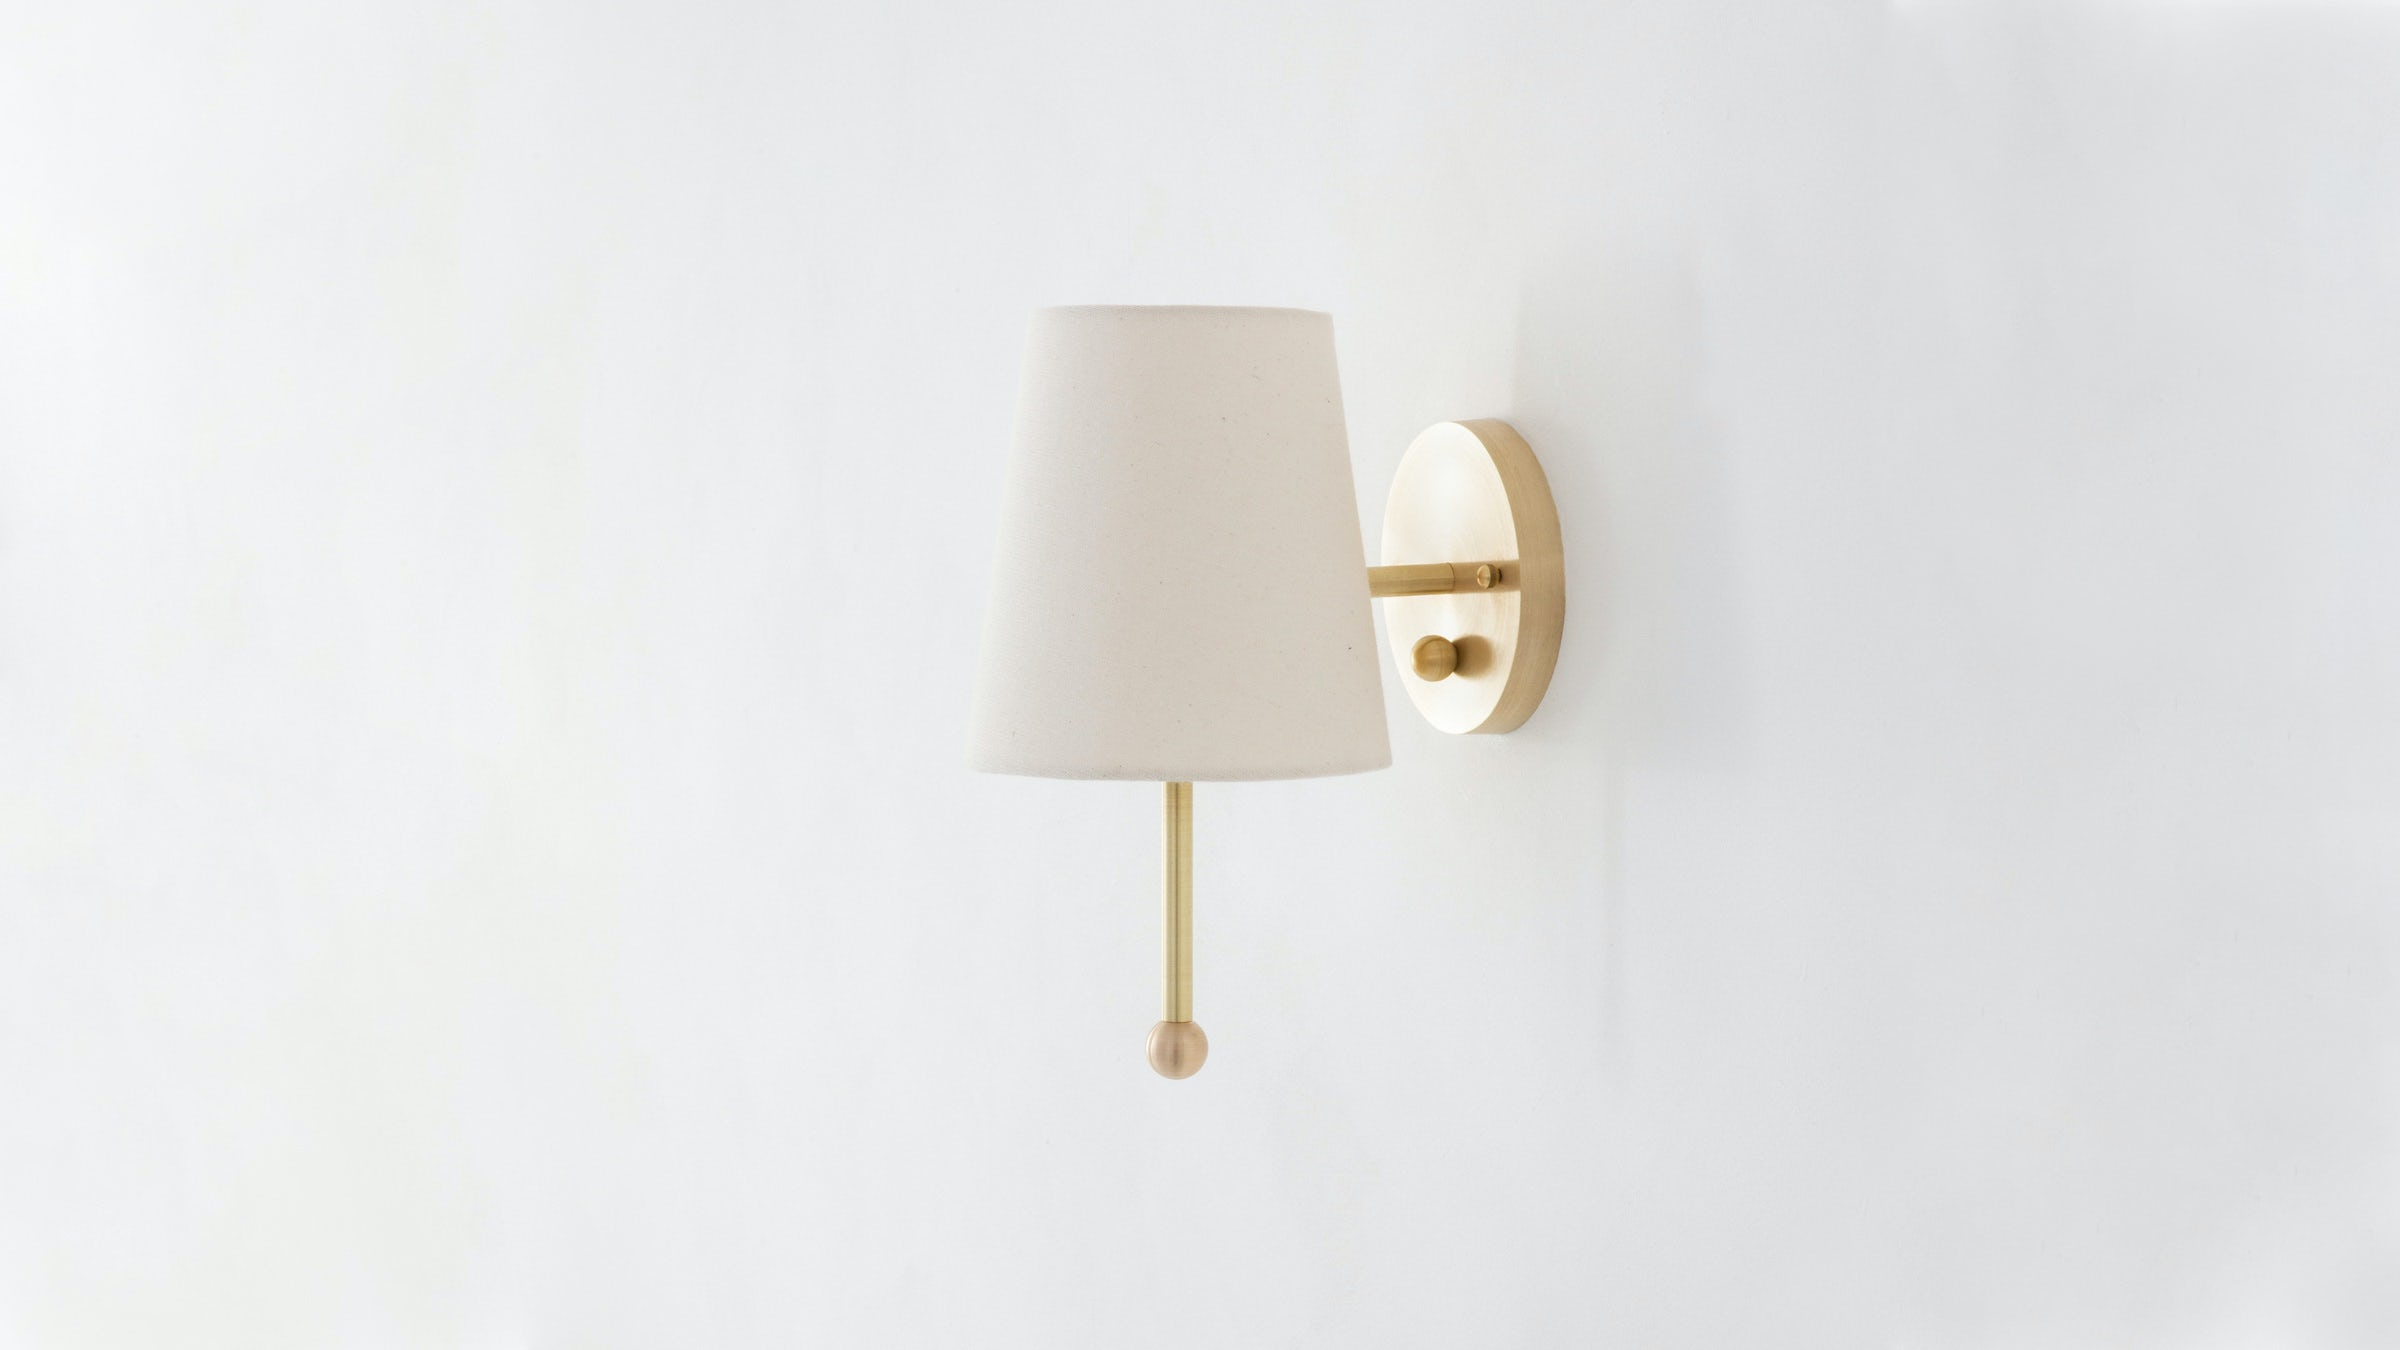 gallery image for House Sconce